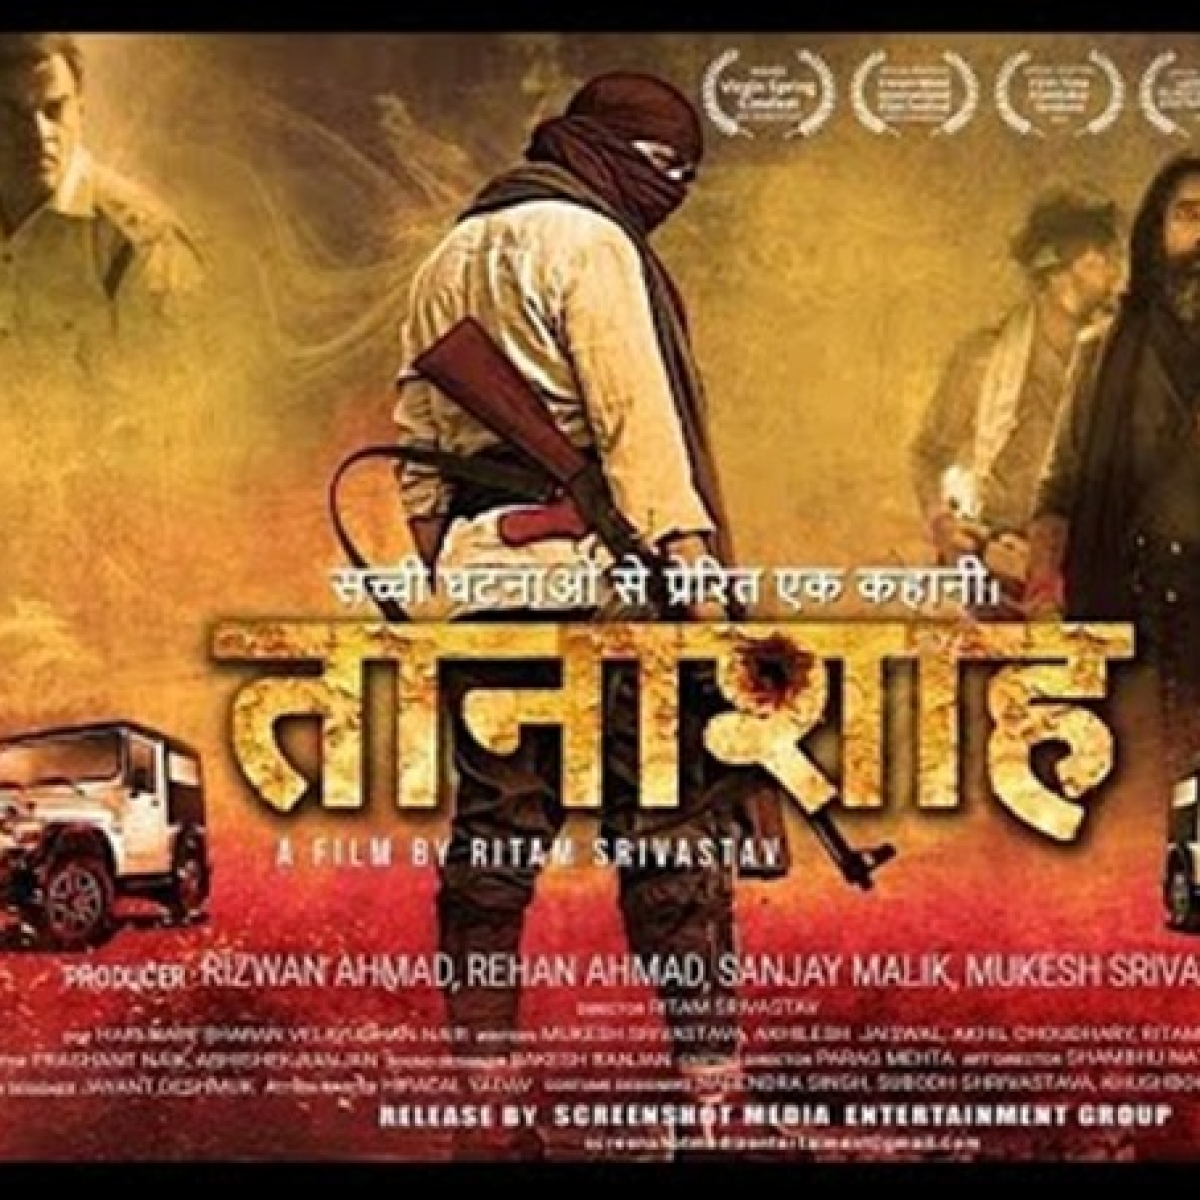 Tanashah Movie Review: Gritty but rather pointless